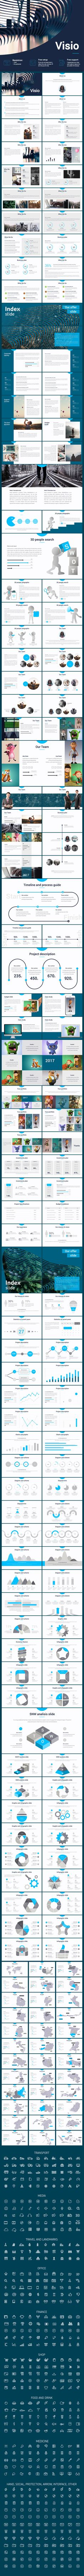 Visio Powerpoint template - Business PowerPoint Templates